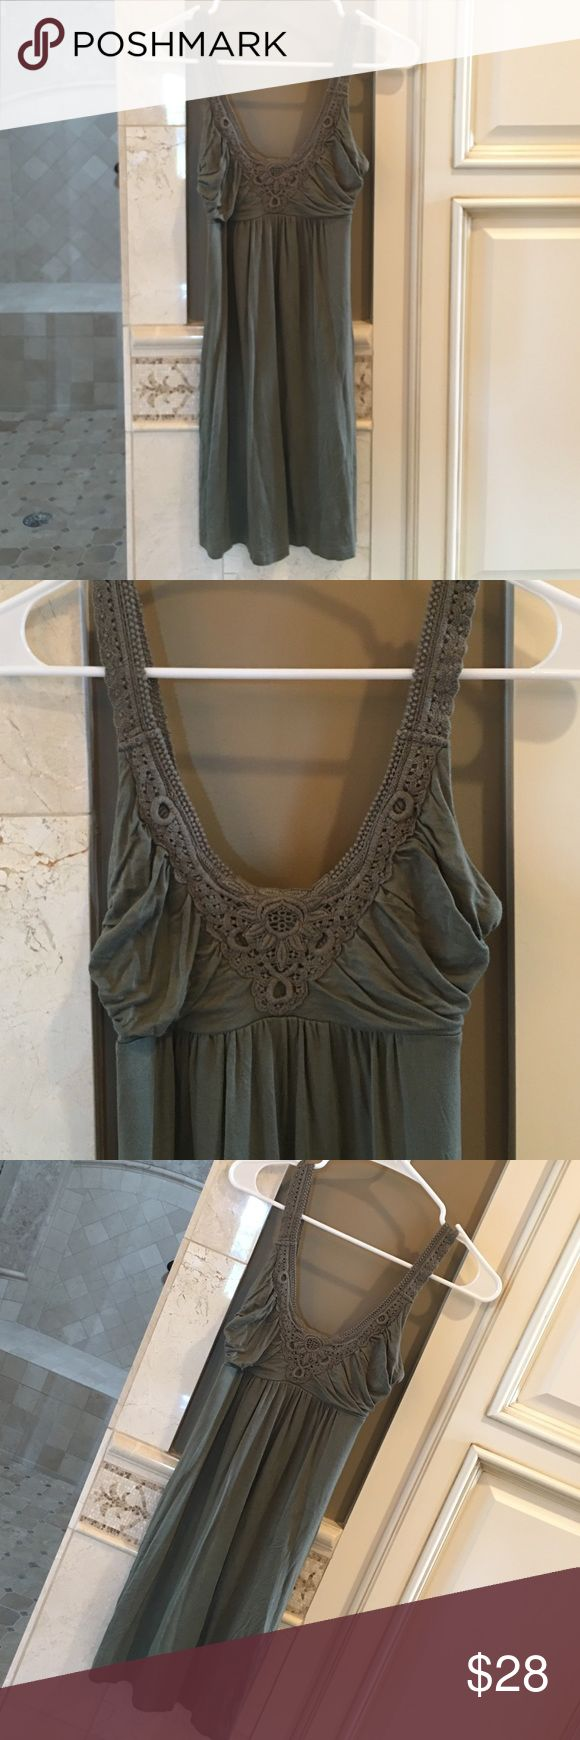 Guess Dress Barely worn a few times! Guess. Size XS GUESS Dresses